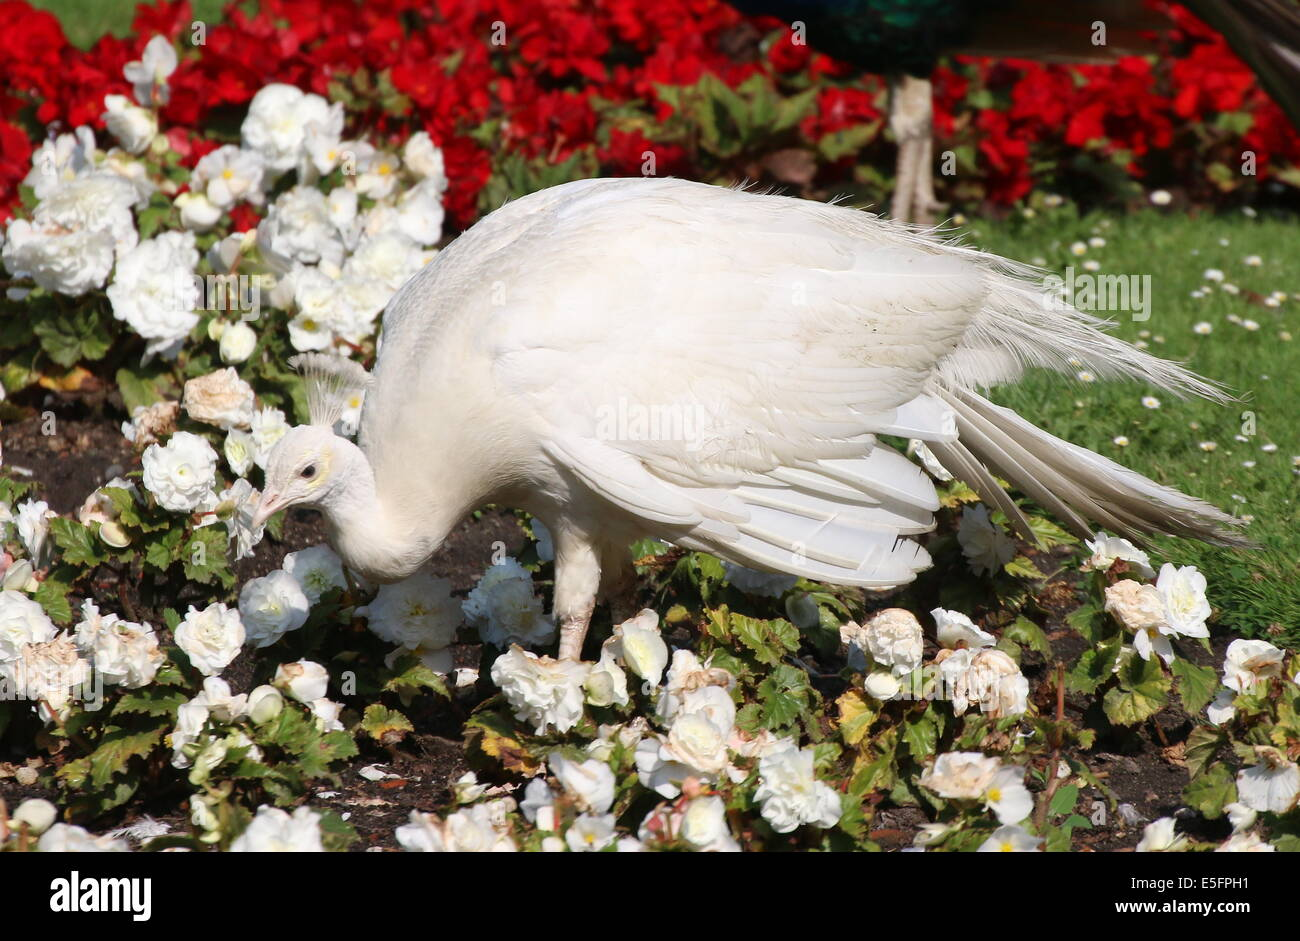 Leucistic or all white variety of the  Blue Peacock (Pavo cristatus alba) walking through a bed of flowers - Stock Image